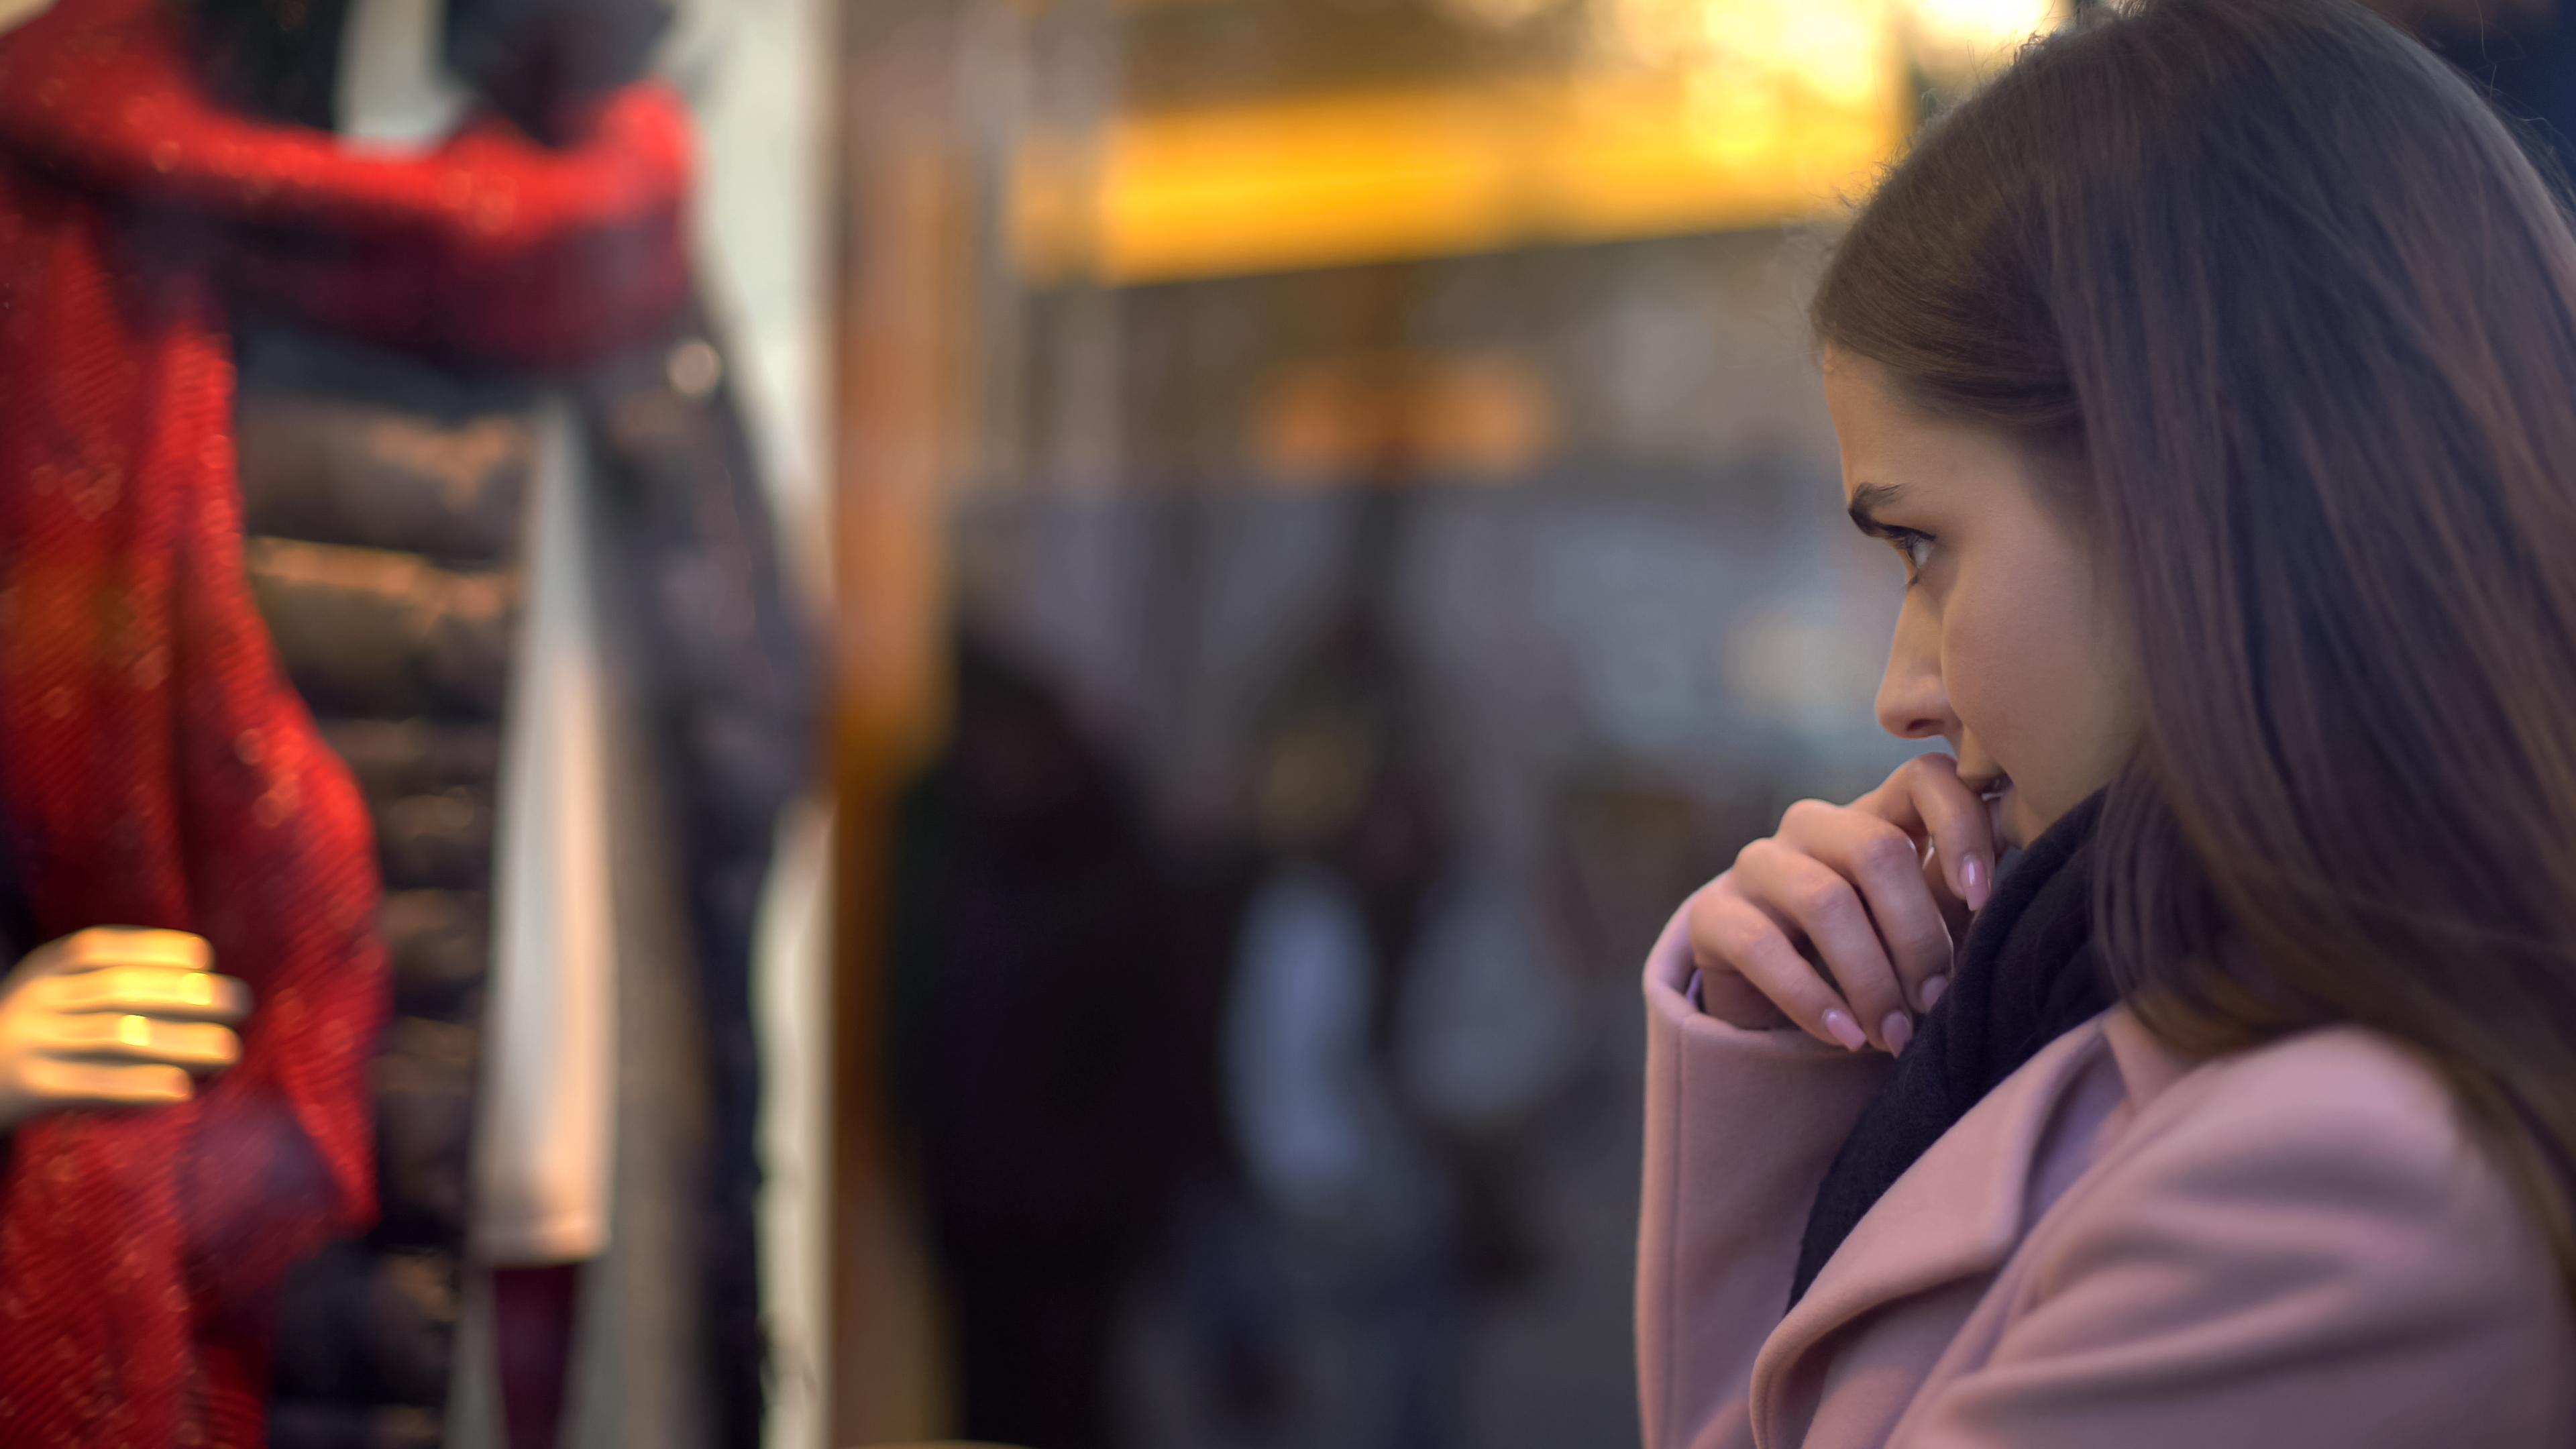 Beautiful lady looking at clothing in shop window, having not enough money